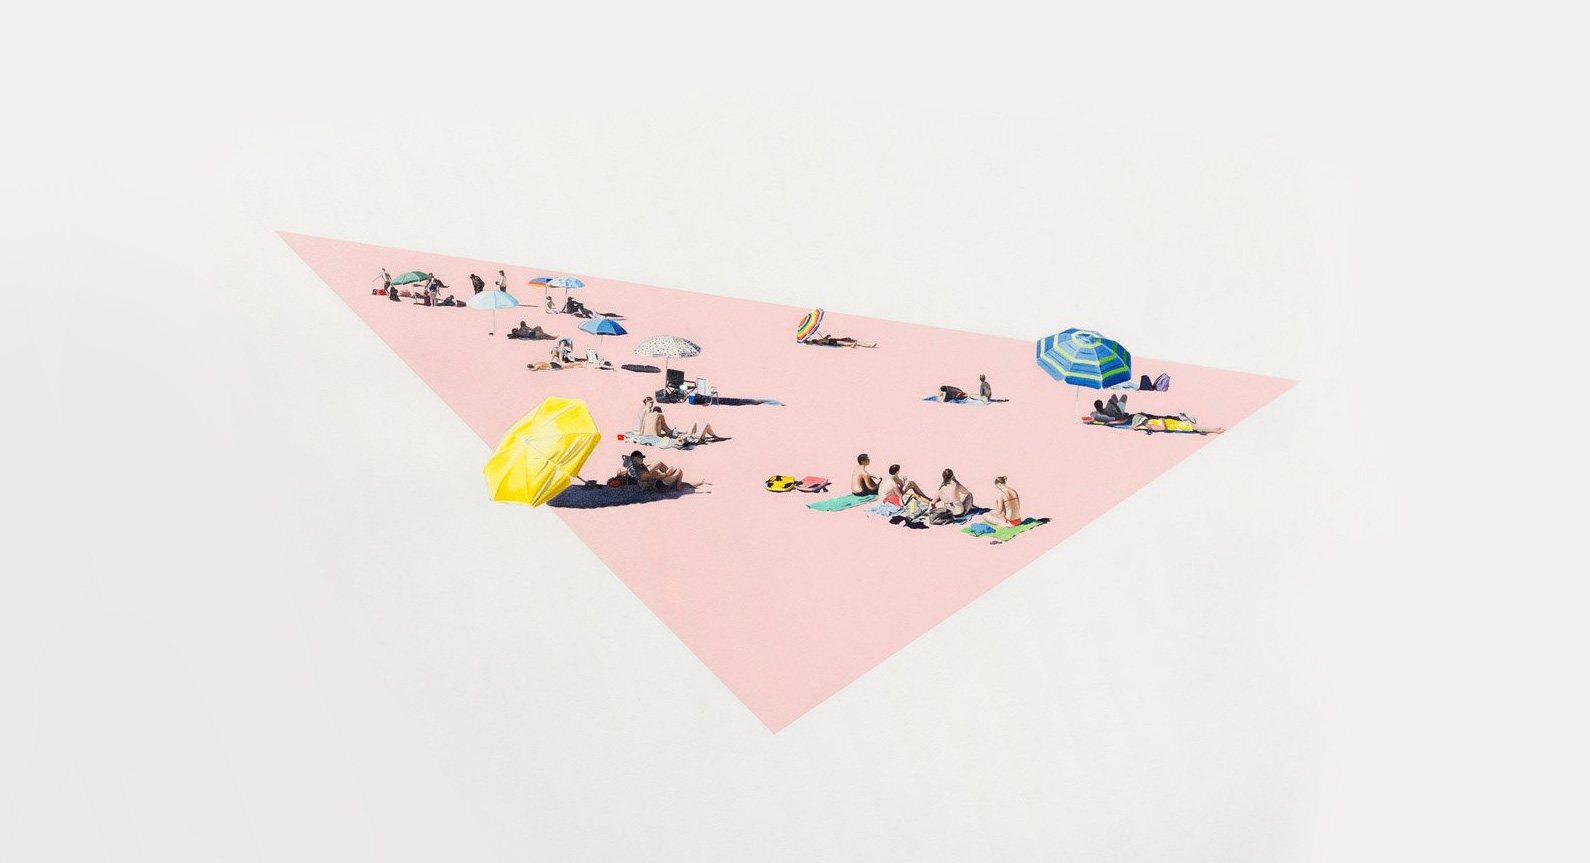 Life's A Beach: Check Out These Stunning Seaside Scenes by Kirsten Beets